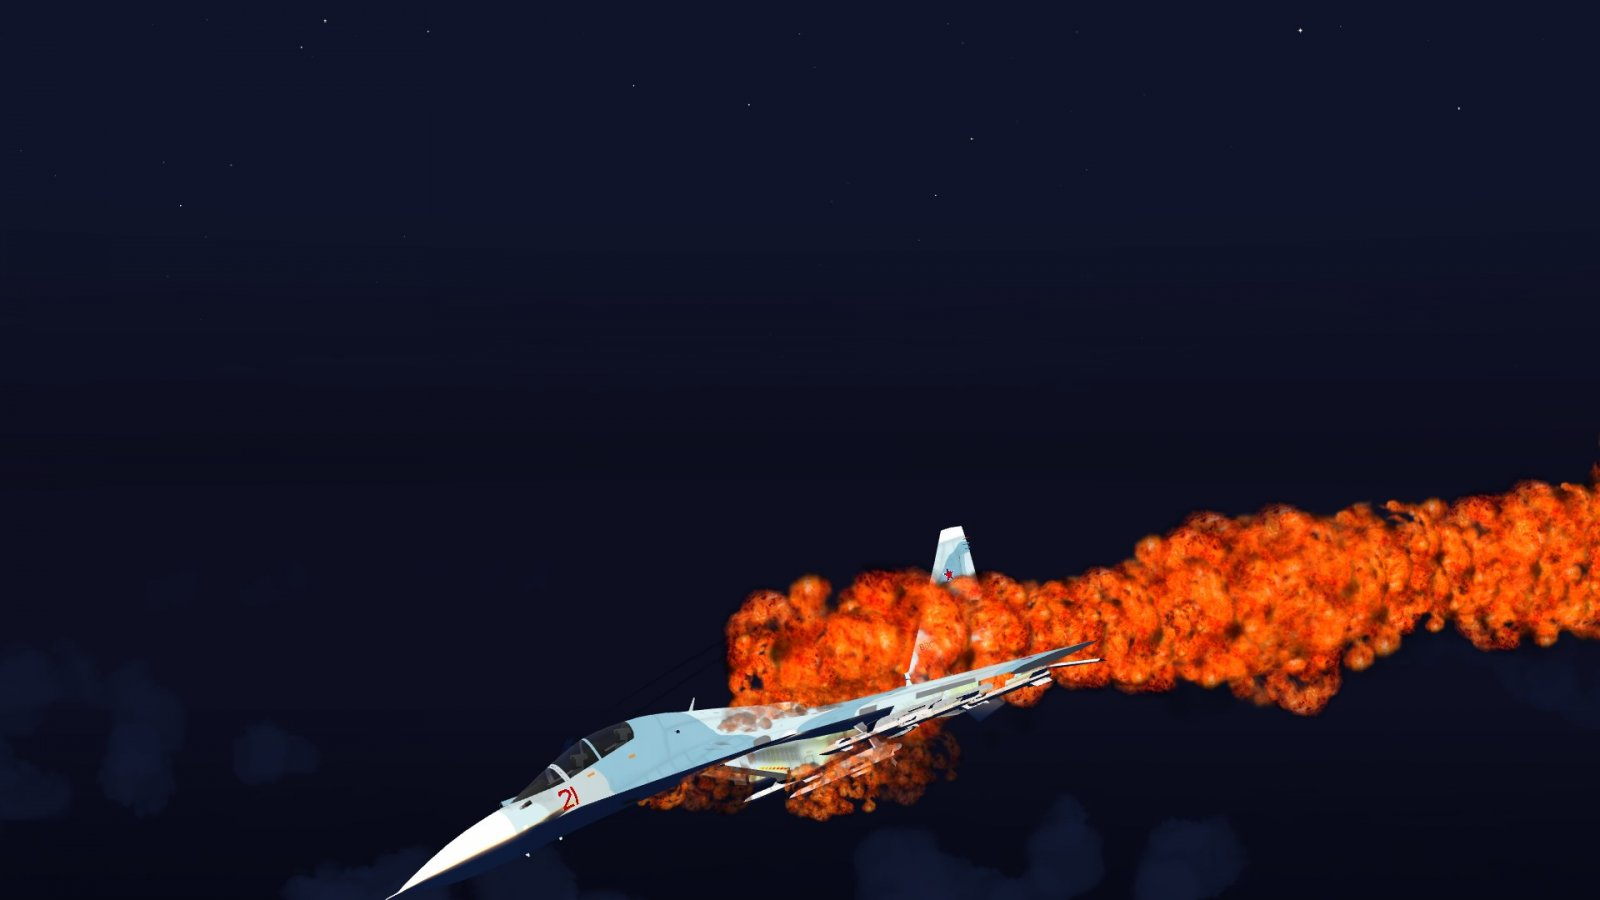 Flanker Going Nose Down & Aflame